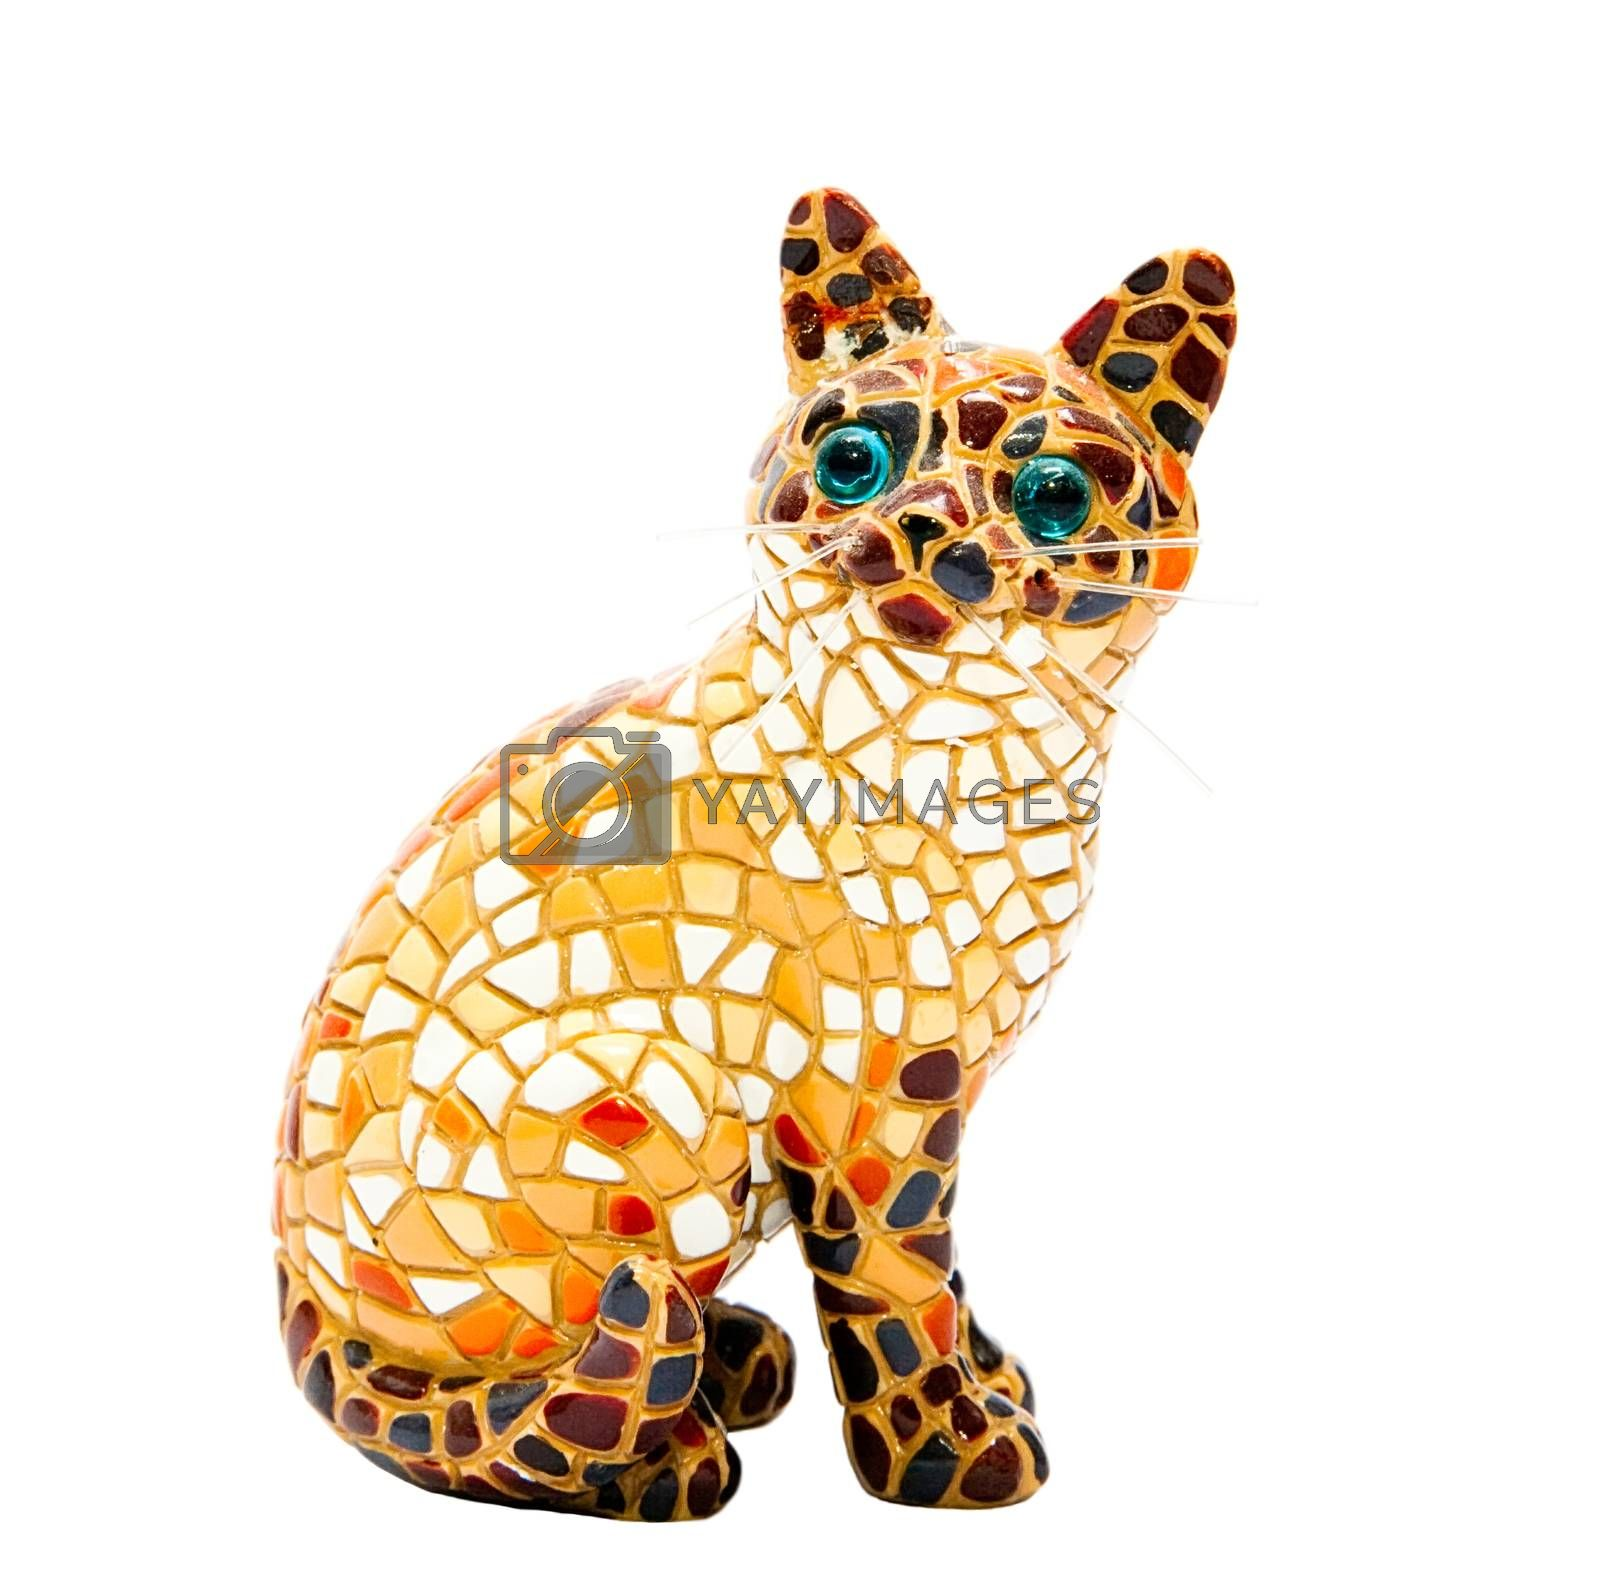 Royalty free image of Mosaic cat by Stavrida